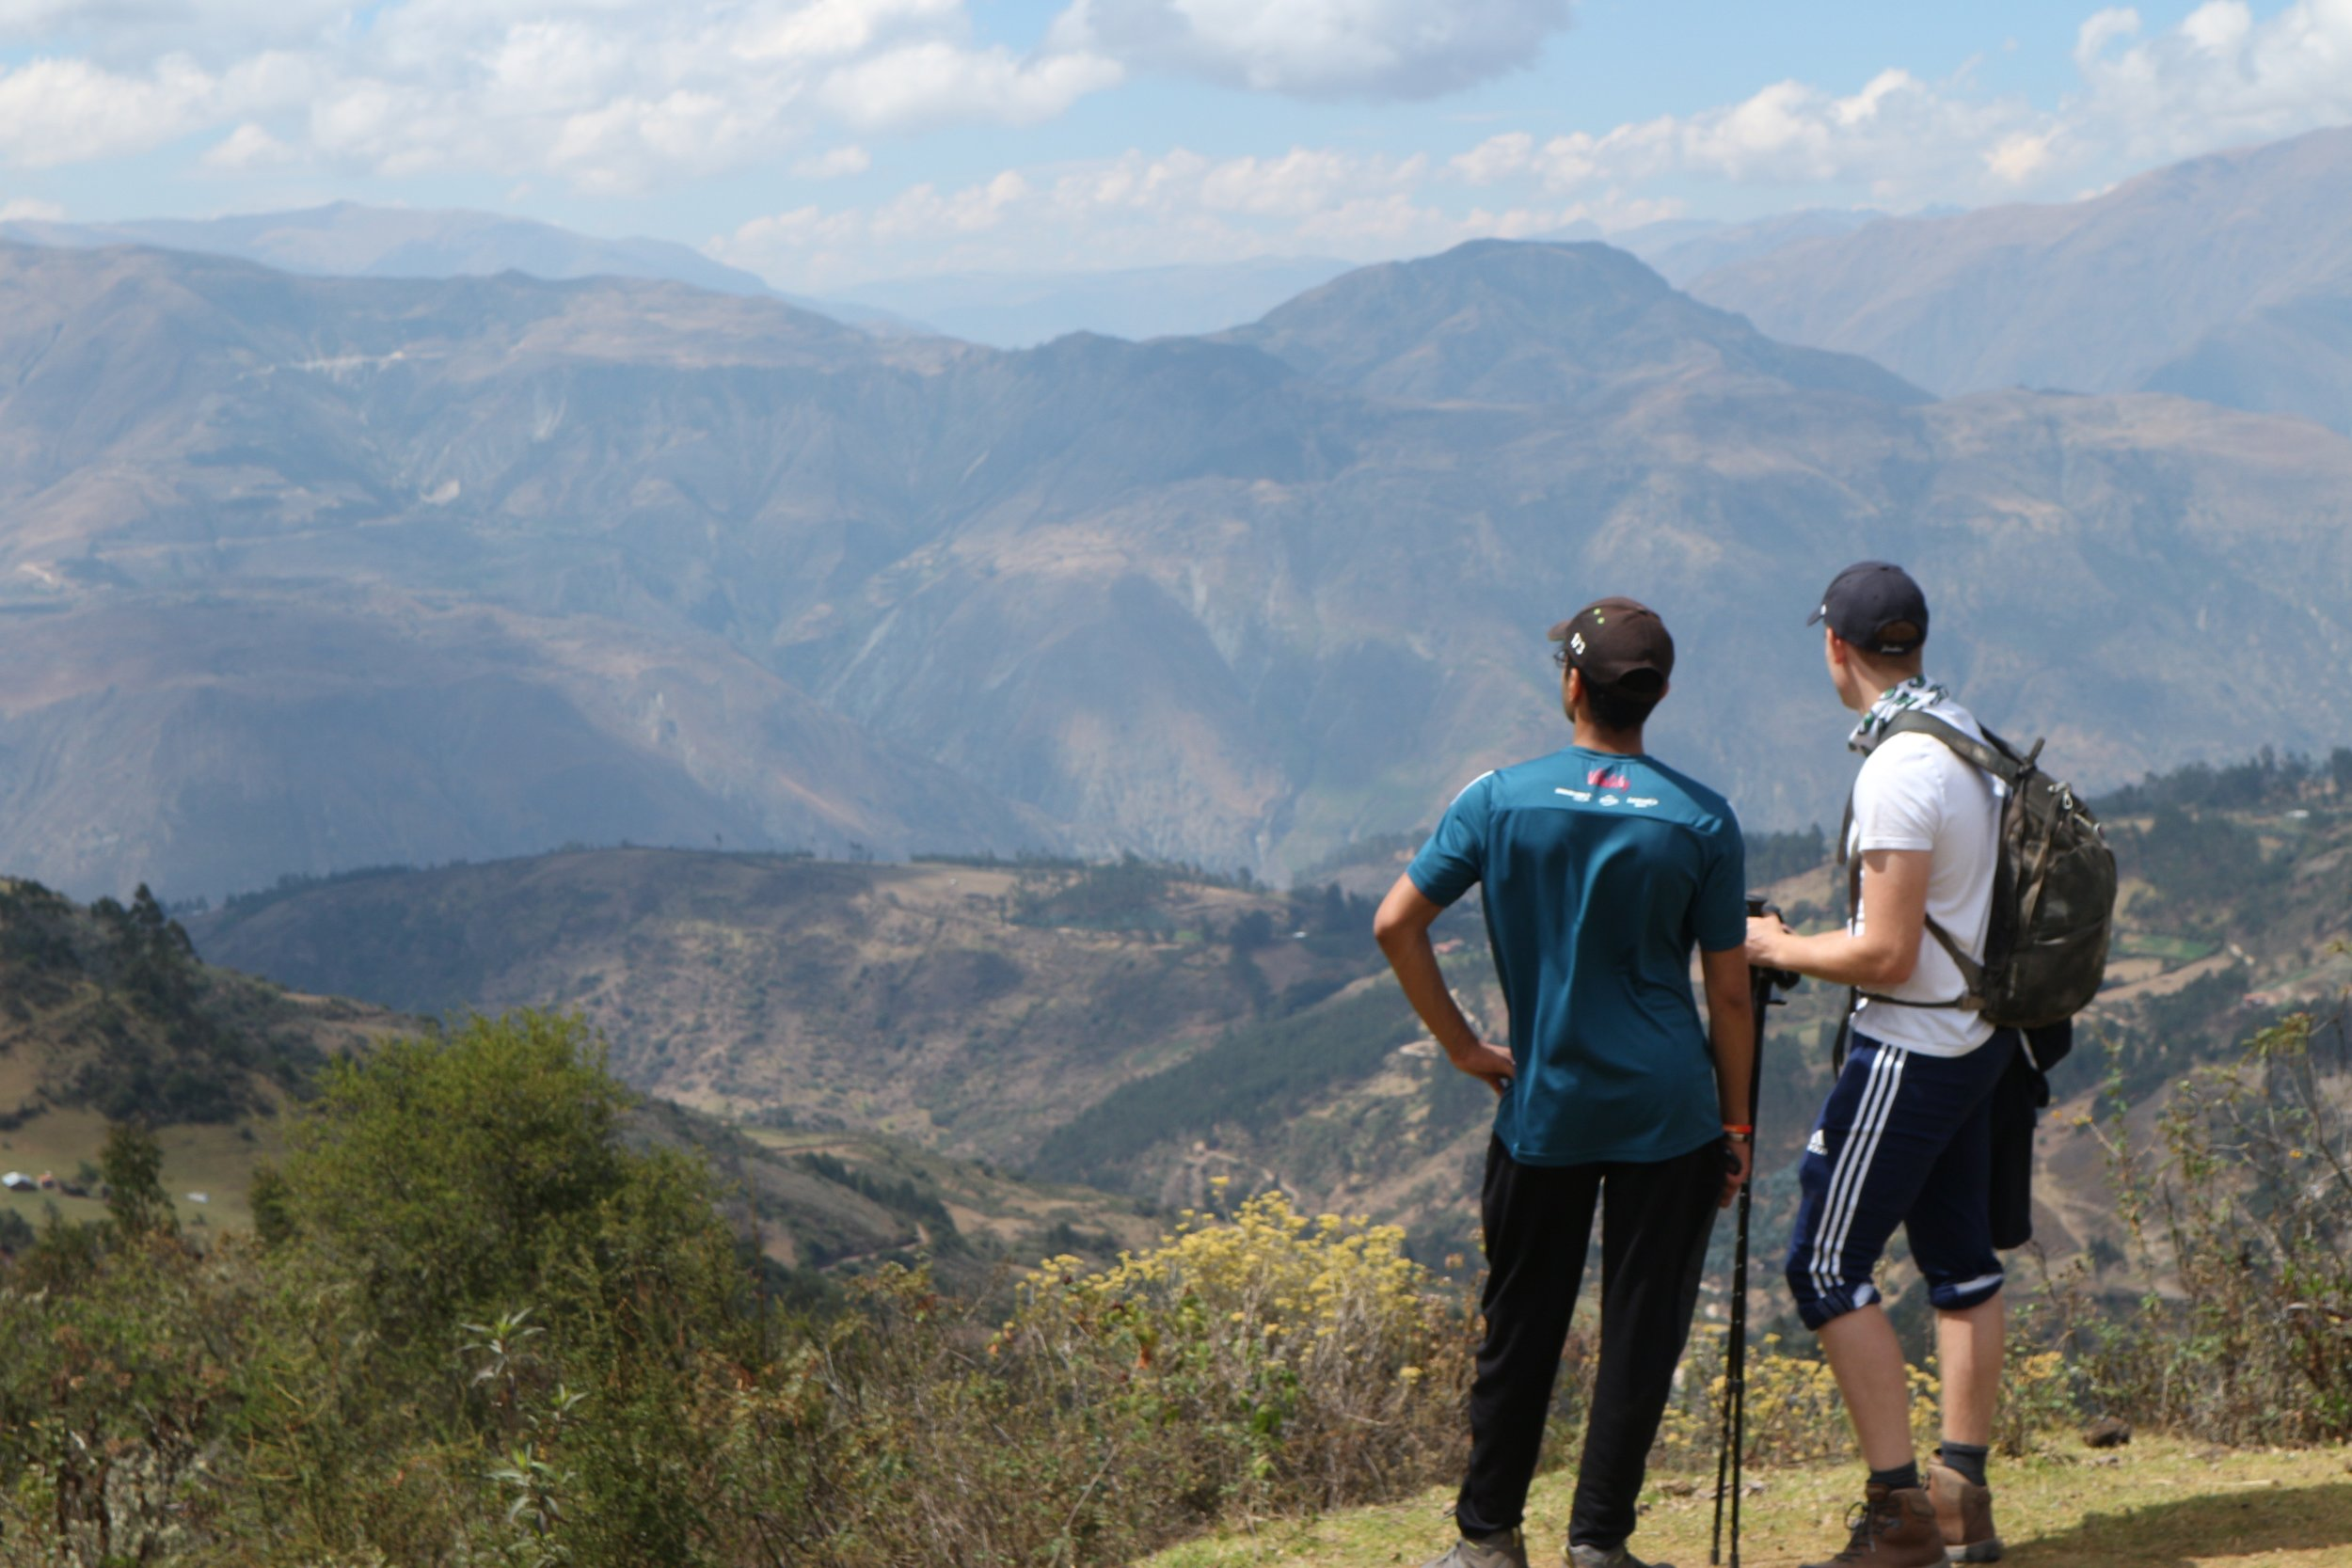 With fundraising deadlines approaching, what else is left to do before your trek?